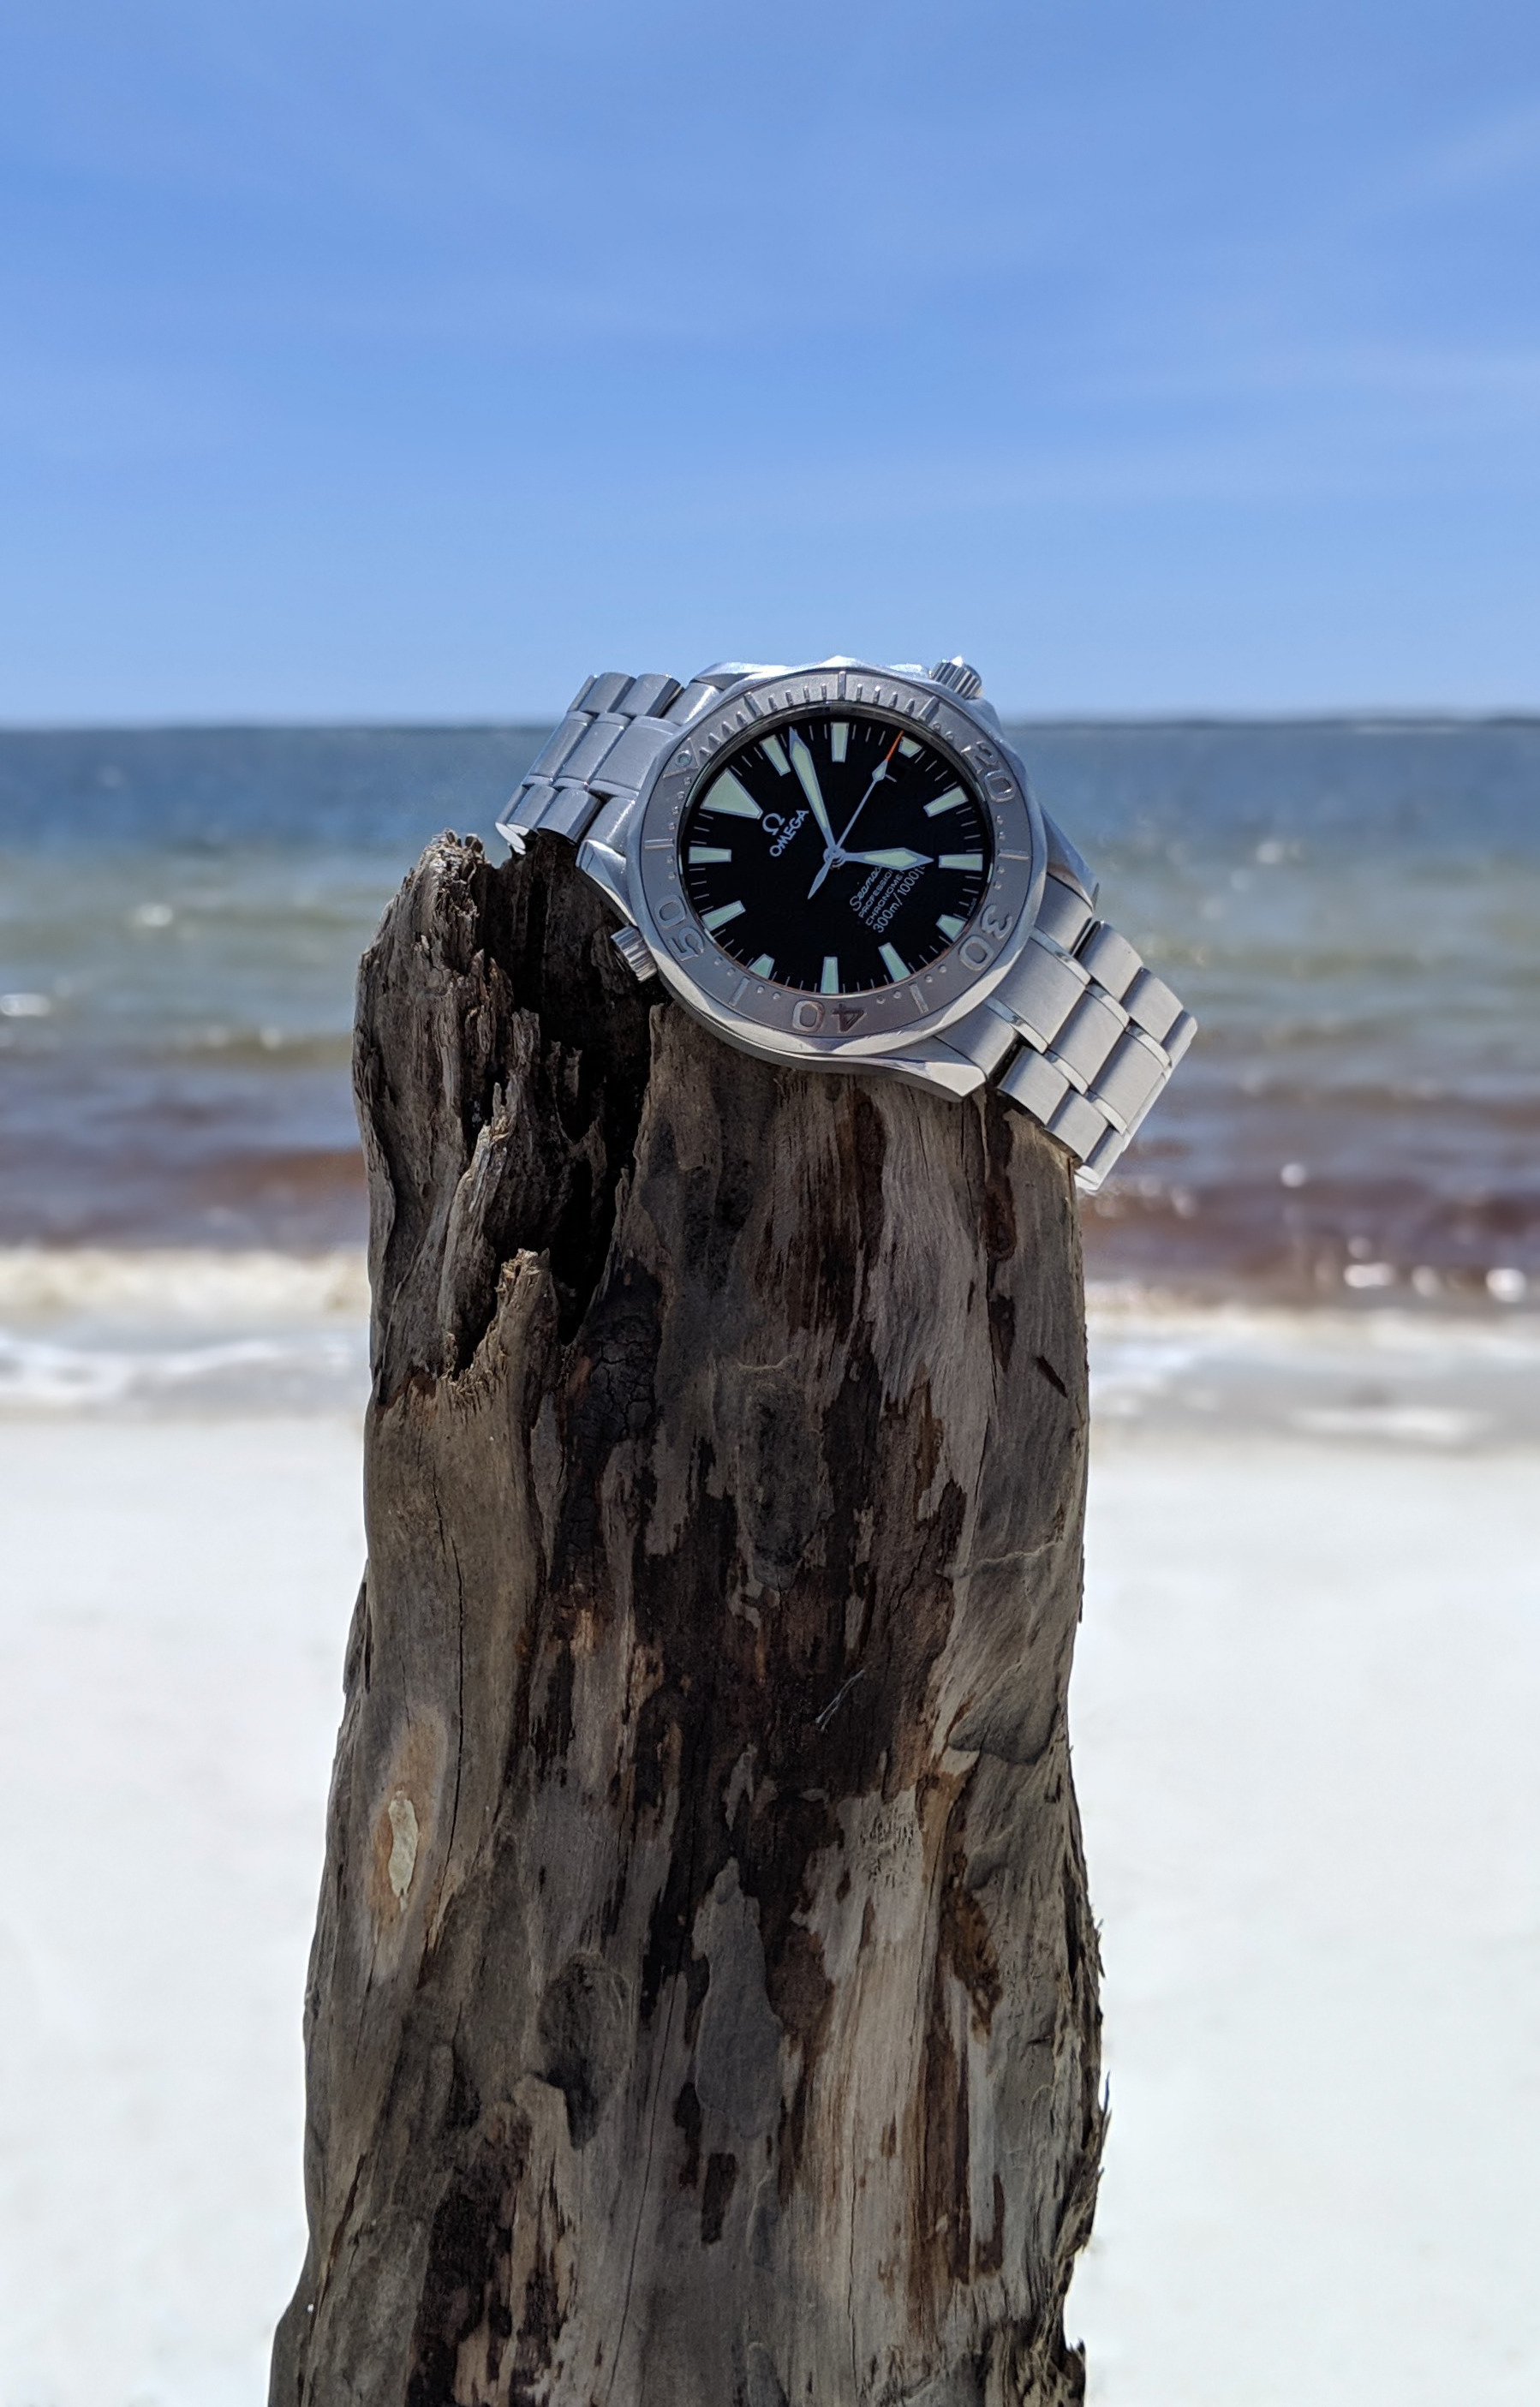 Seamaster 2230.50 Florida beach